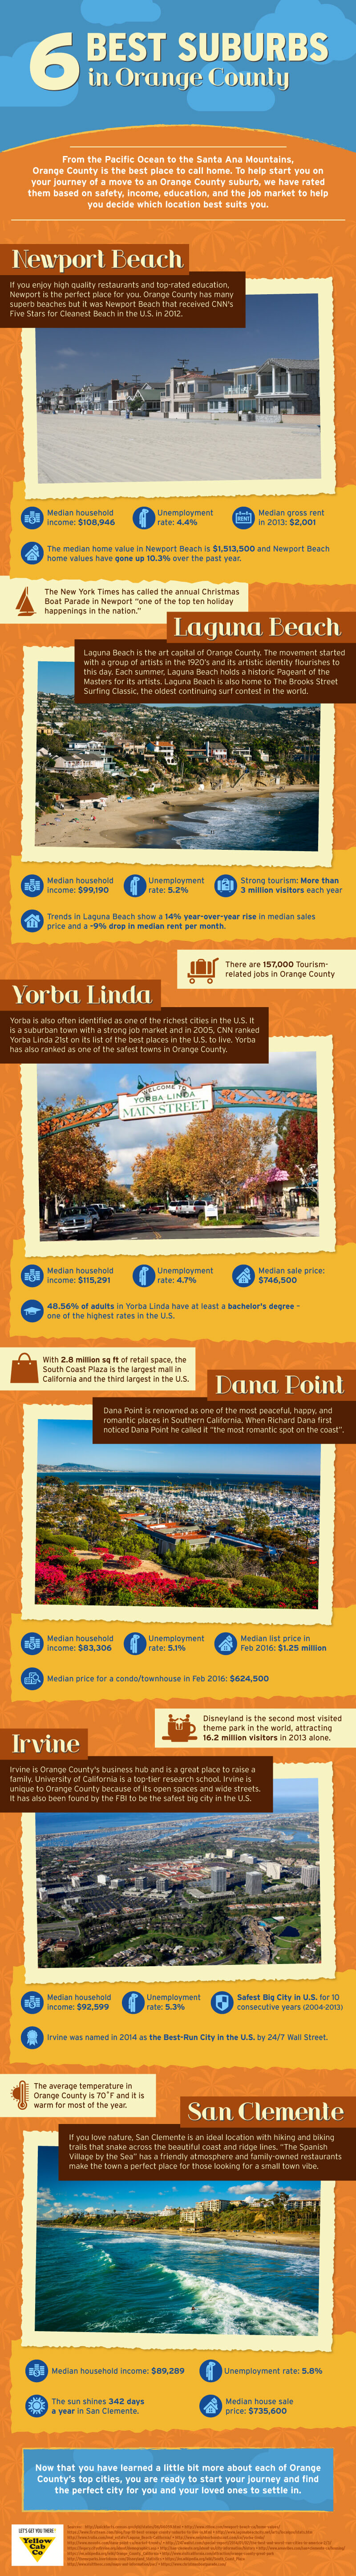 6-best-suburbs-in-orange-county-infographic-plaza